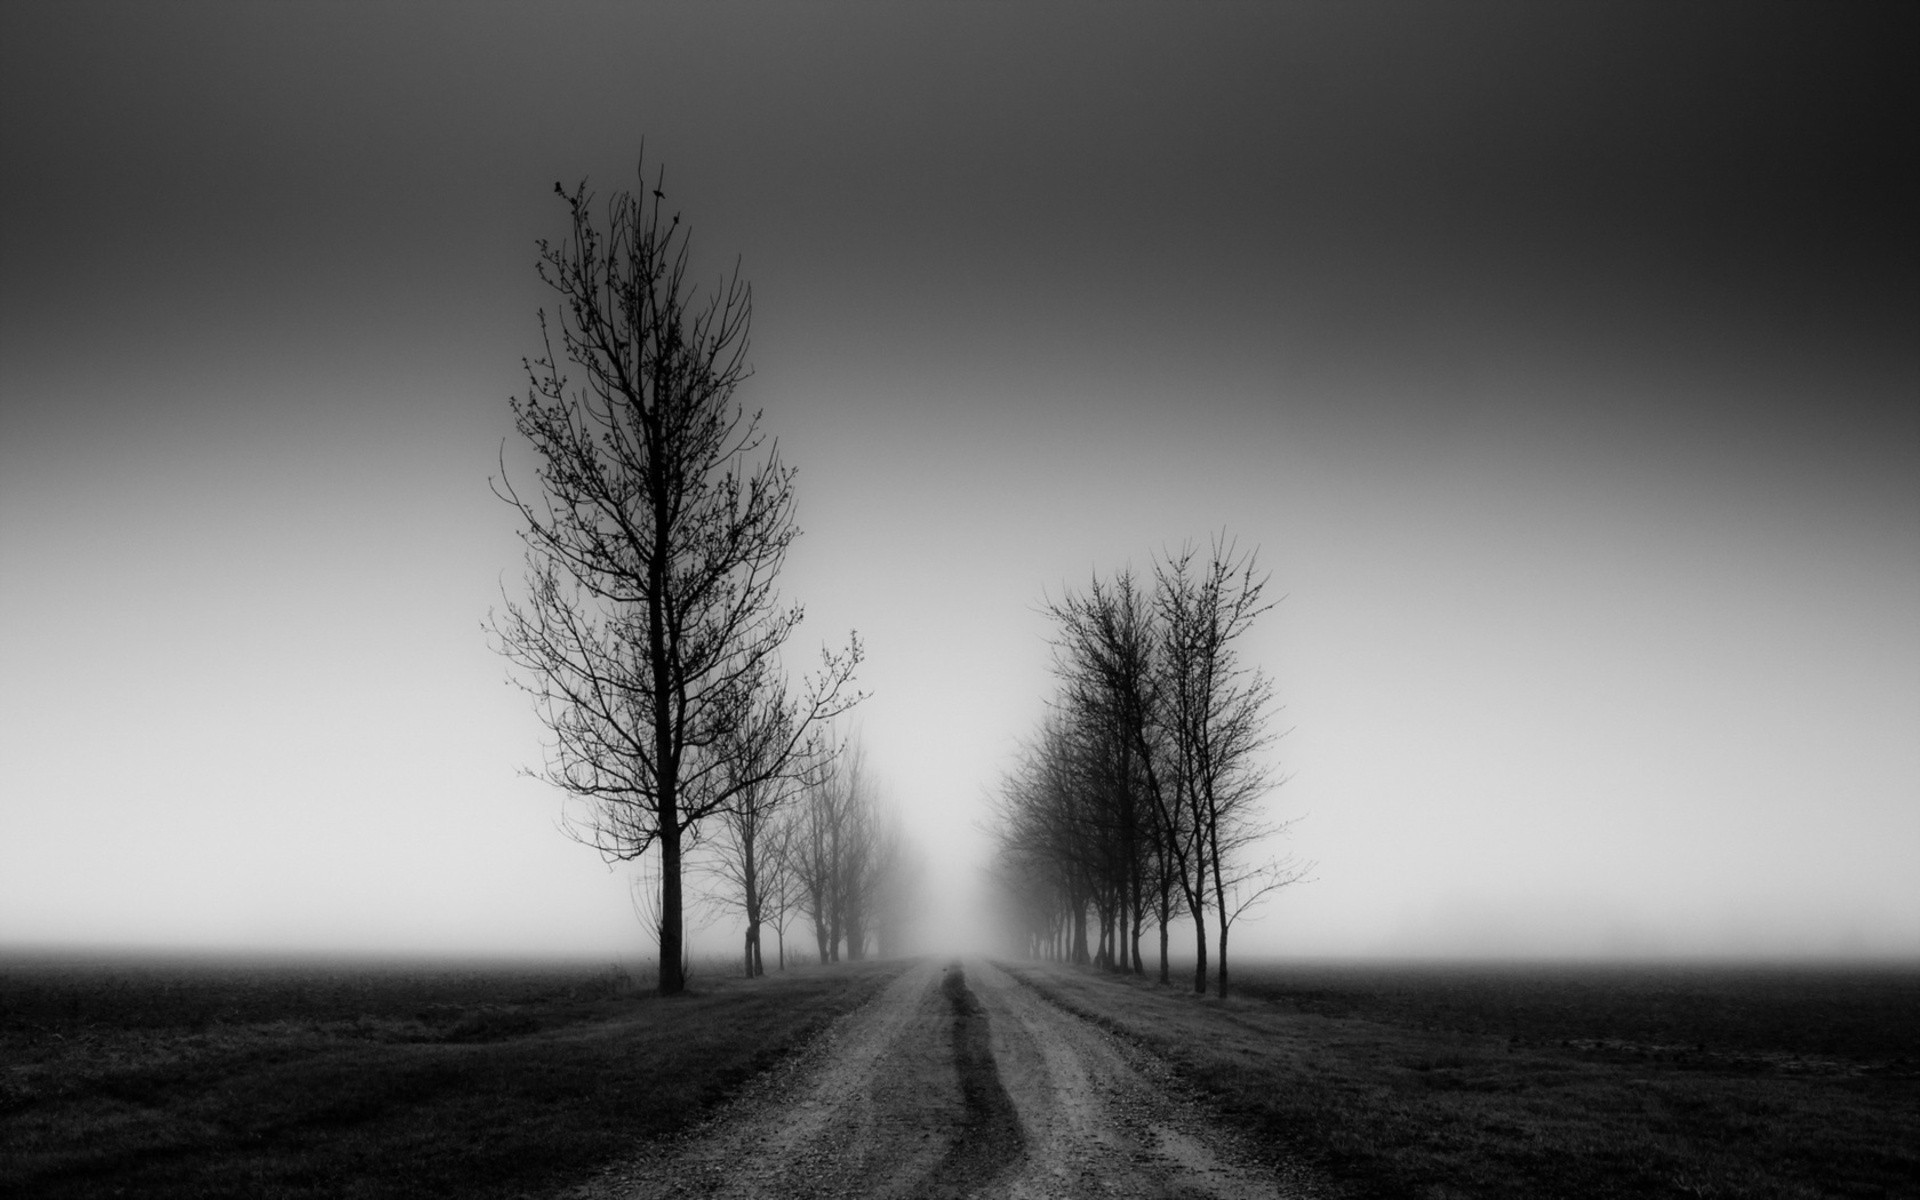 blank and white nature photos | Black And White Trees Nature